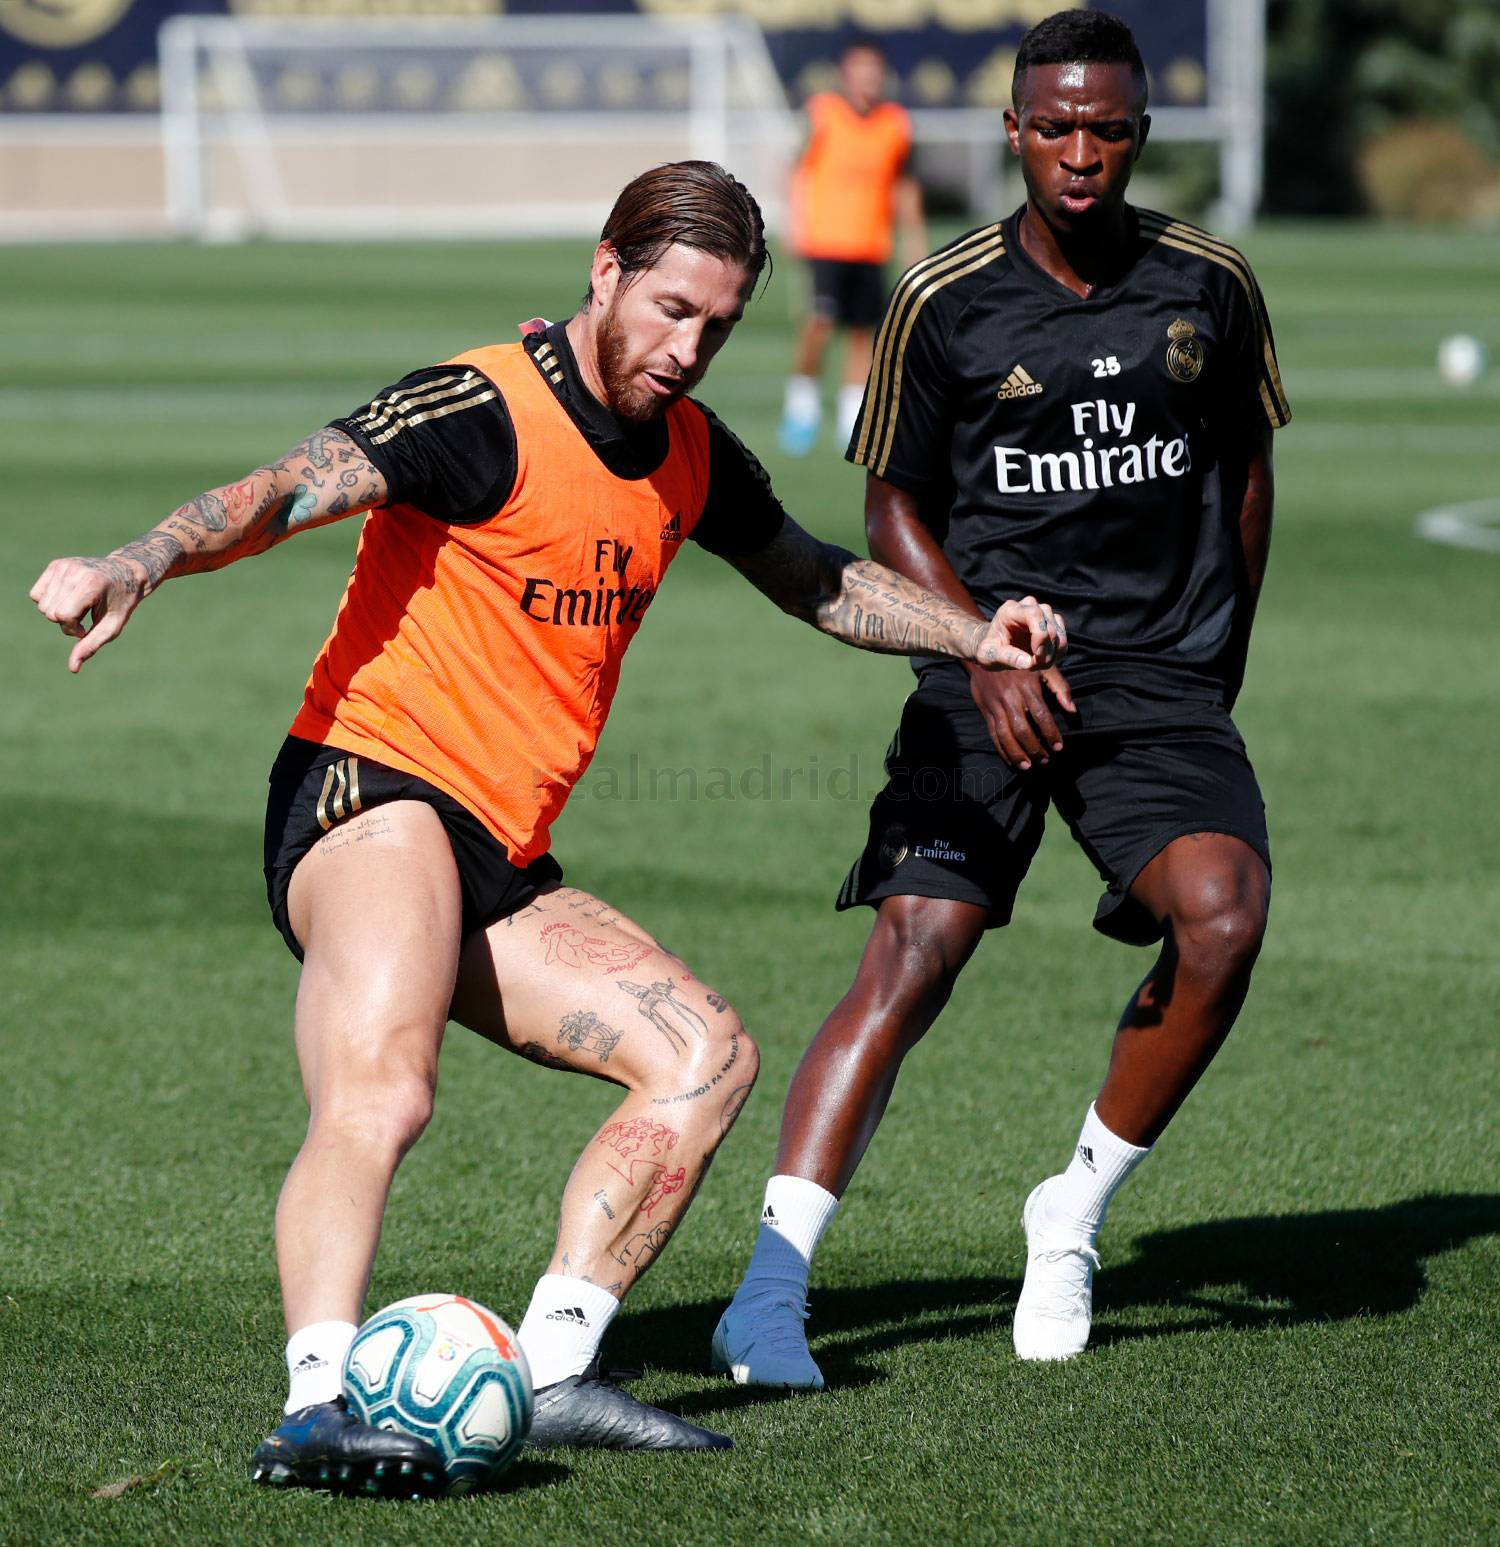 Real Madrid - Entrenamiento del Real Madrid  - 27-09-2019